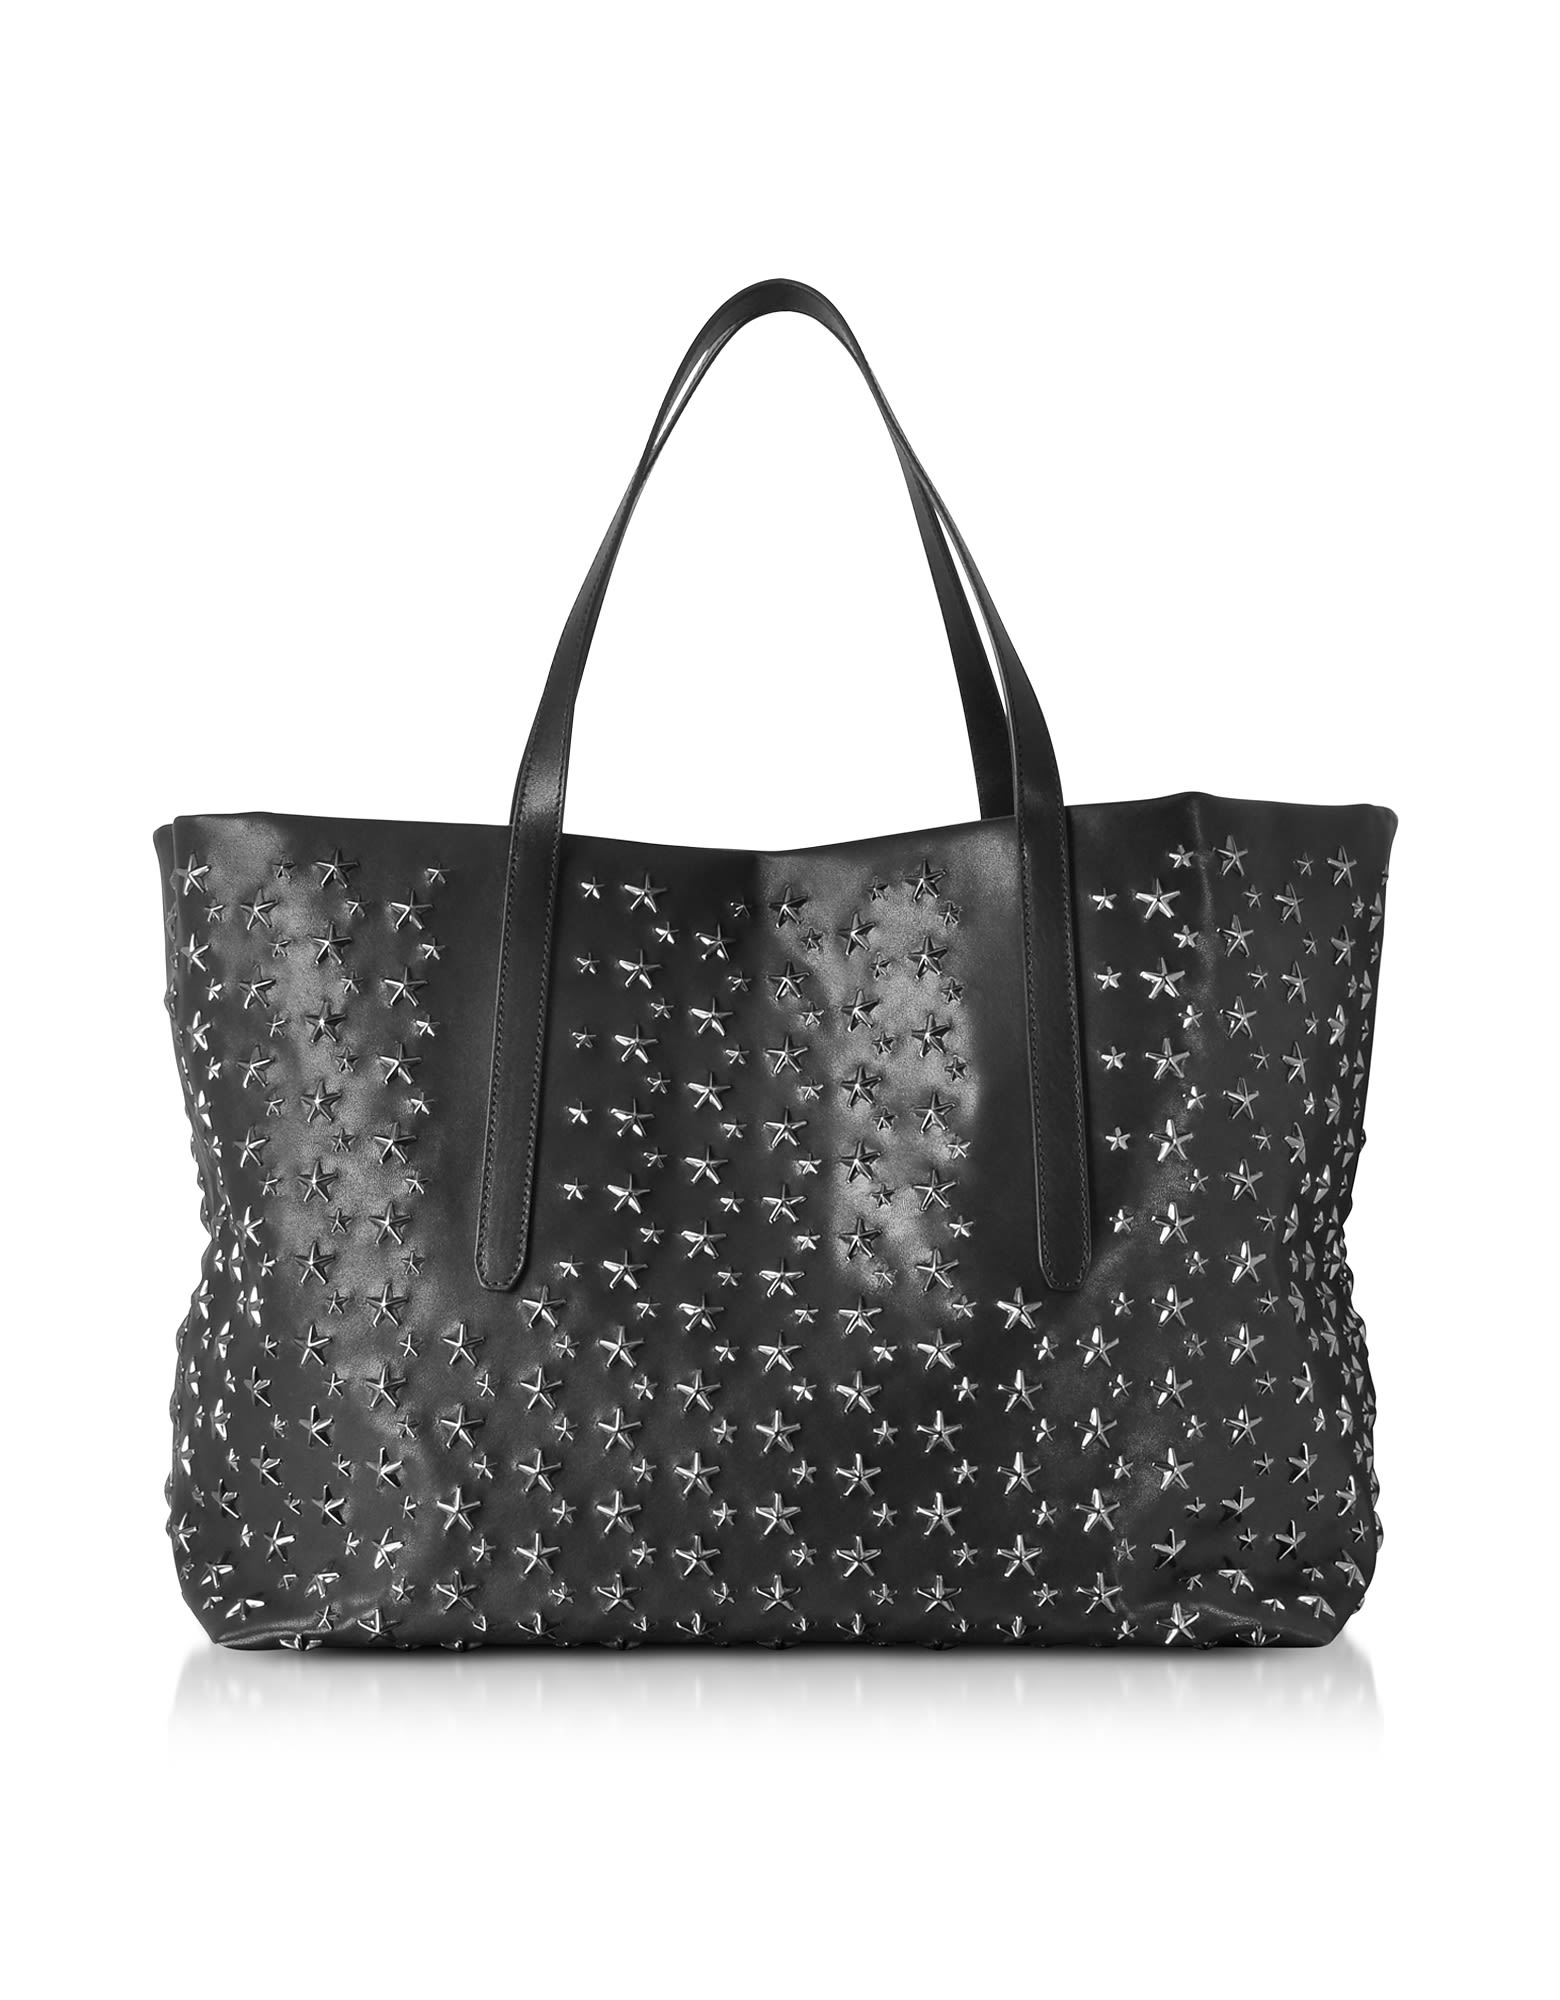 BLACK STARS STUDDED LEATHER PIMLICO LARGE TOTE BAG